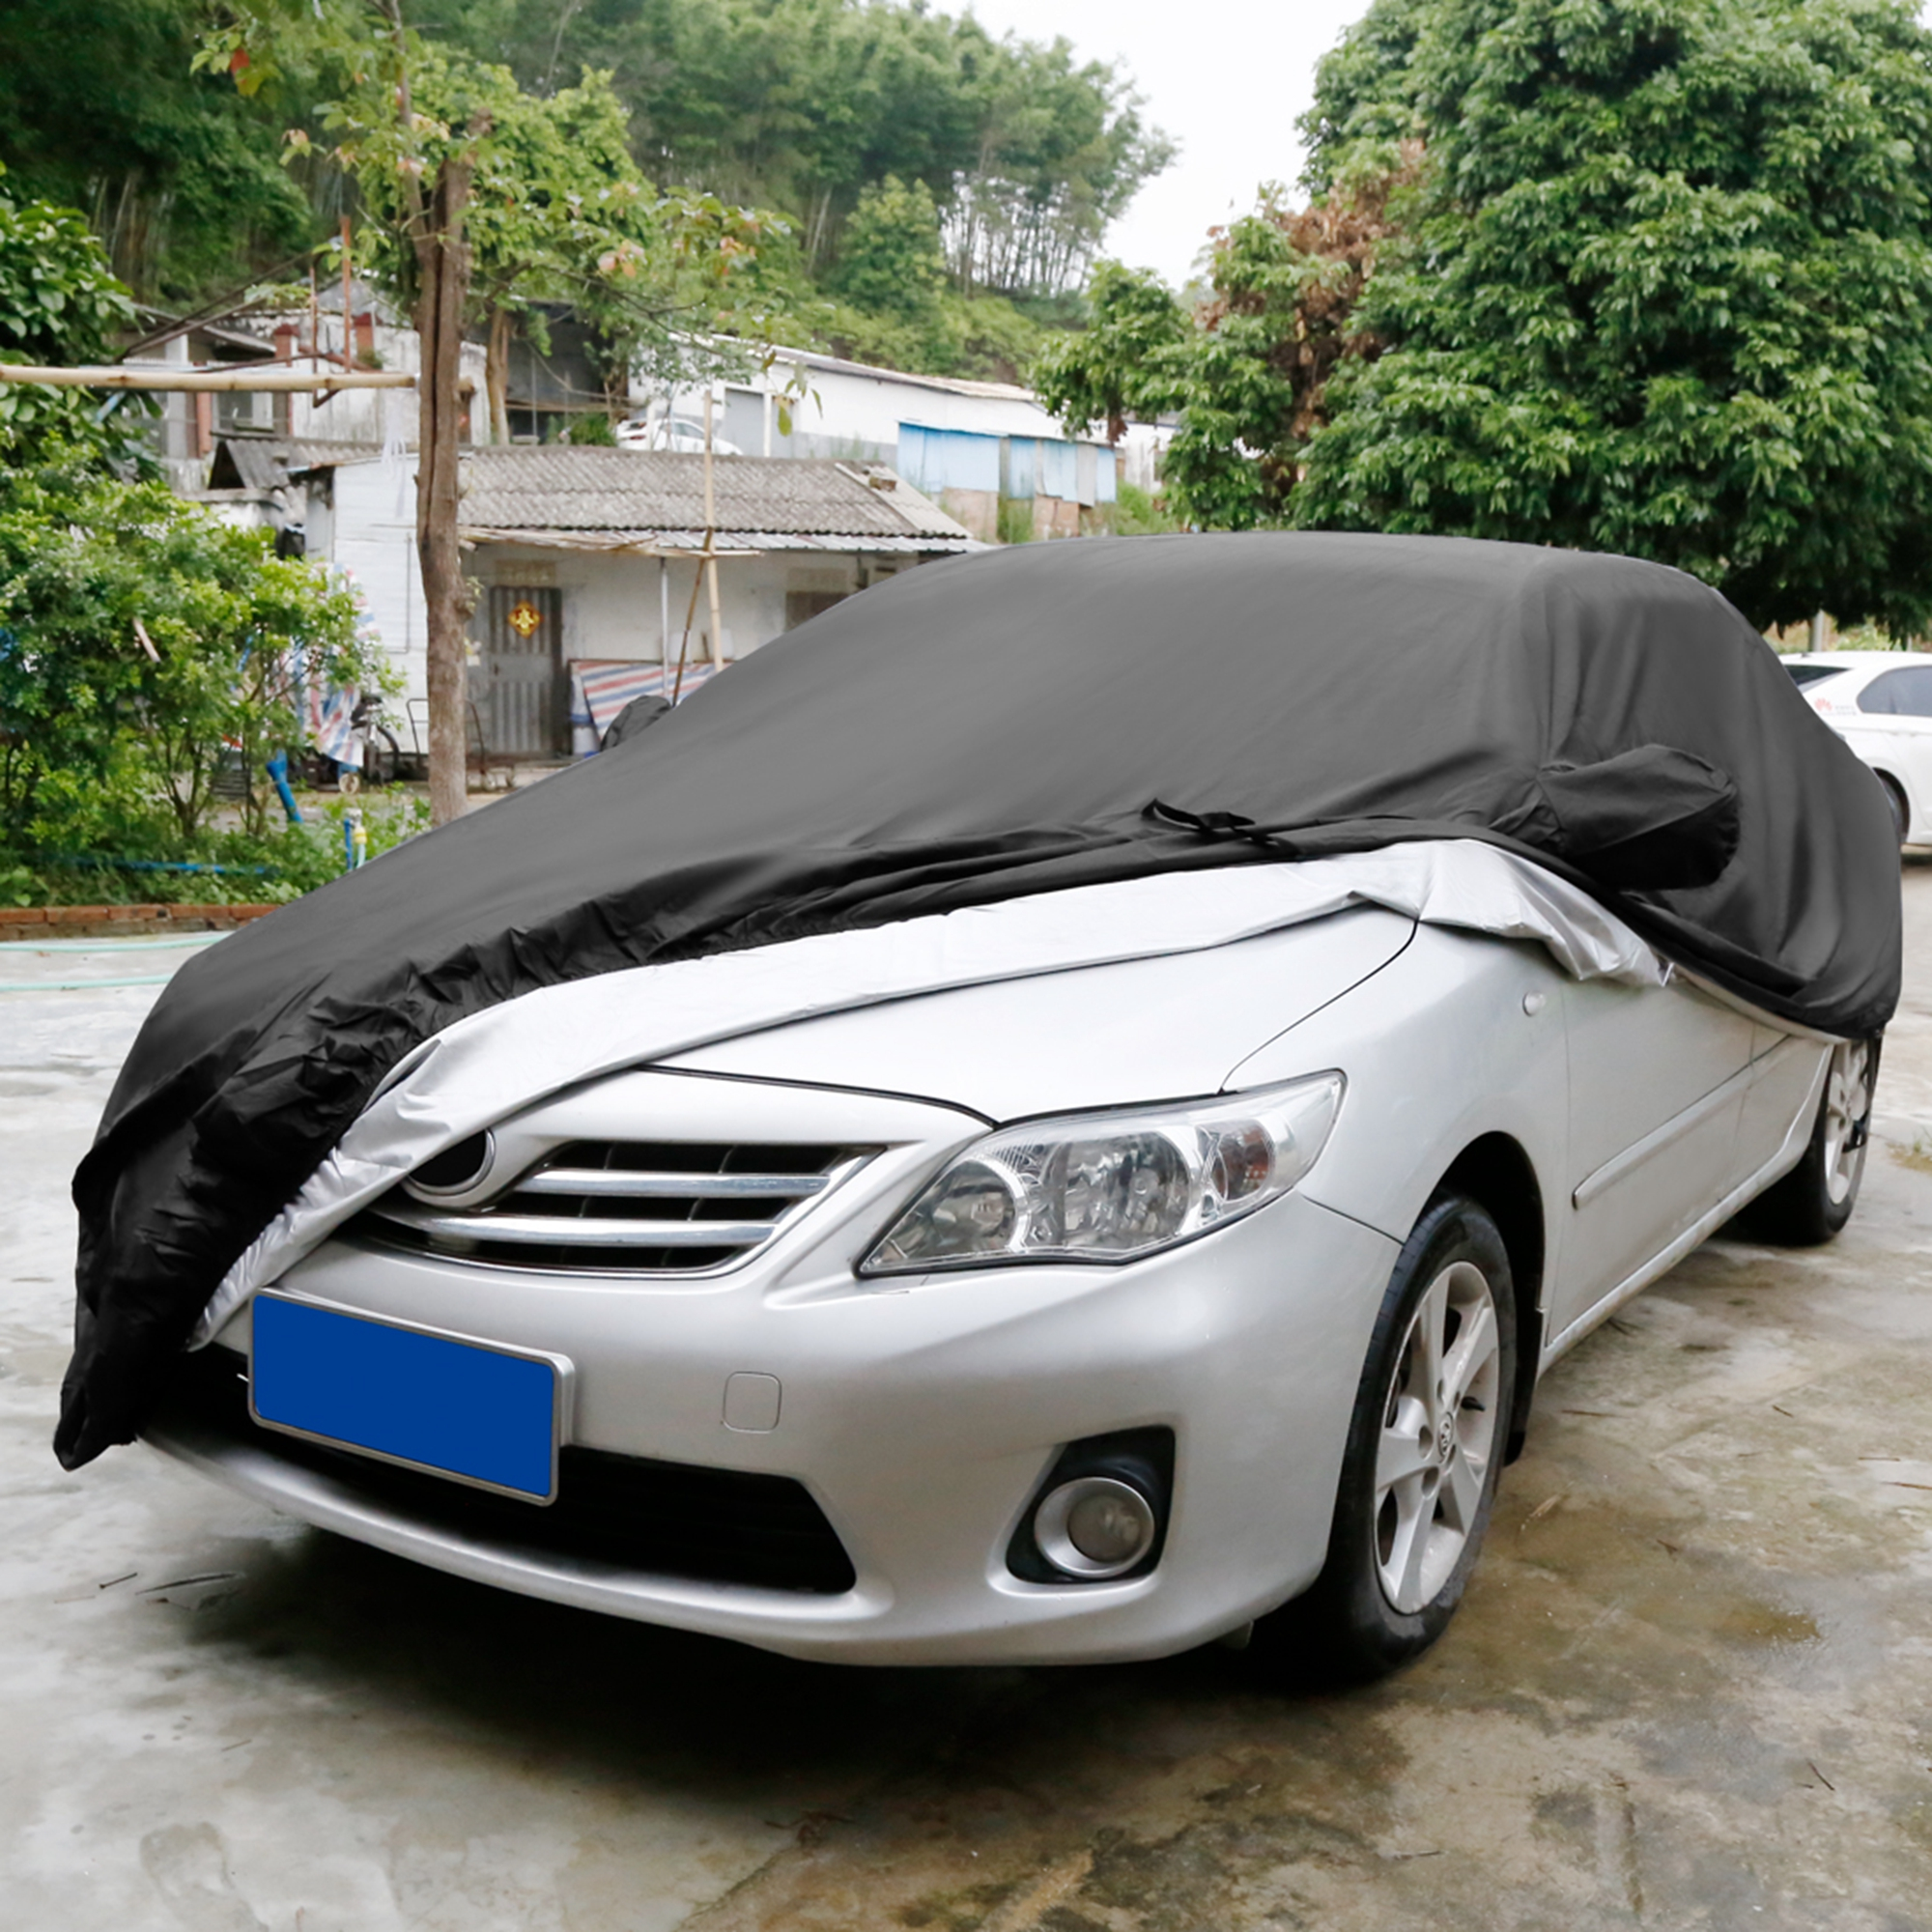 stormproof waterproof breathable luxurious black car cover. Black Bedroom Furniture Sets. Home Design Ideas